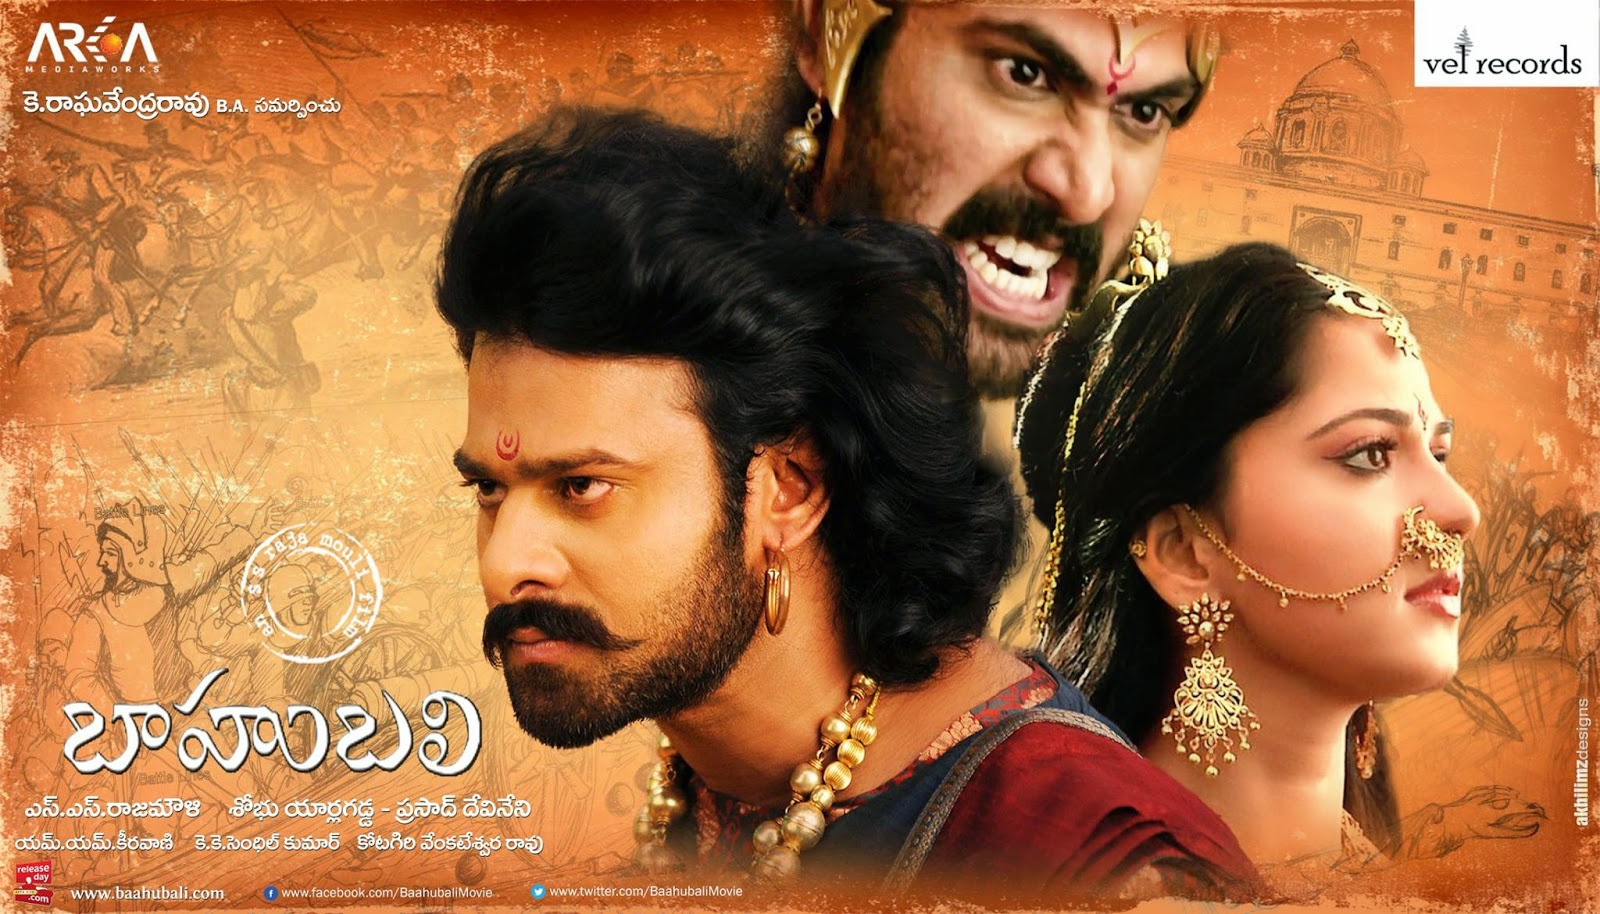 Baahubali Movie box office